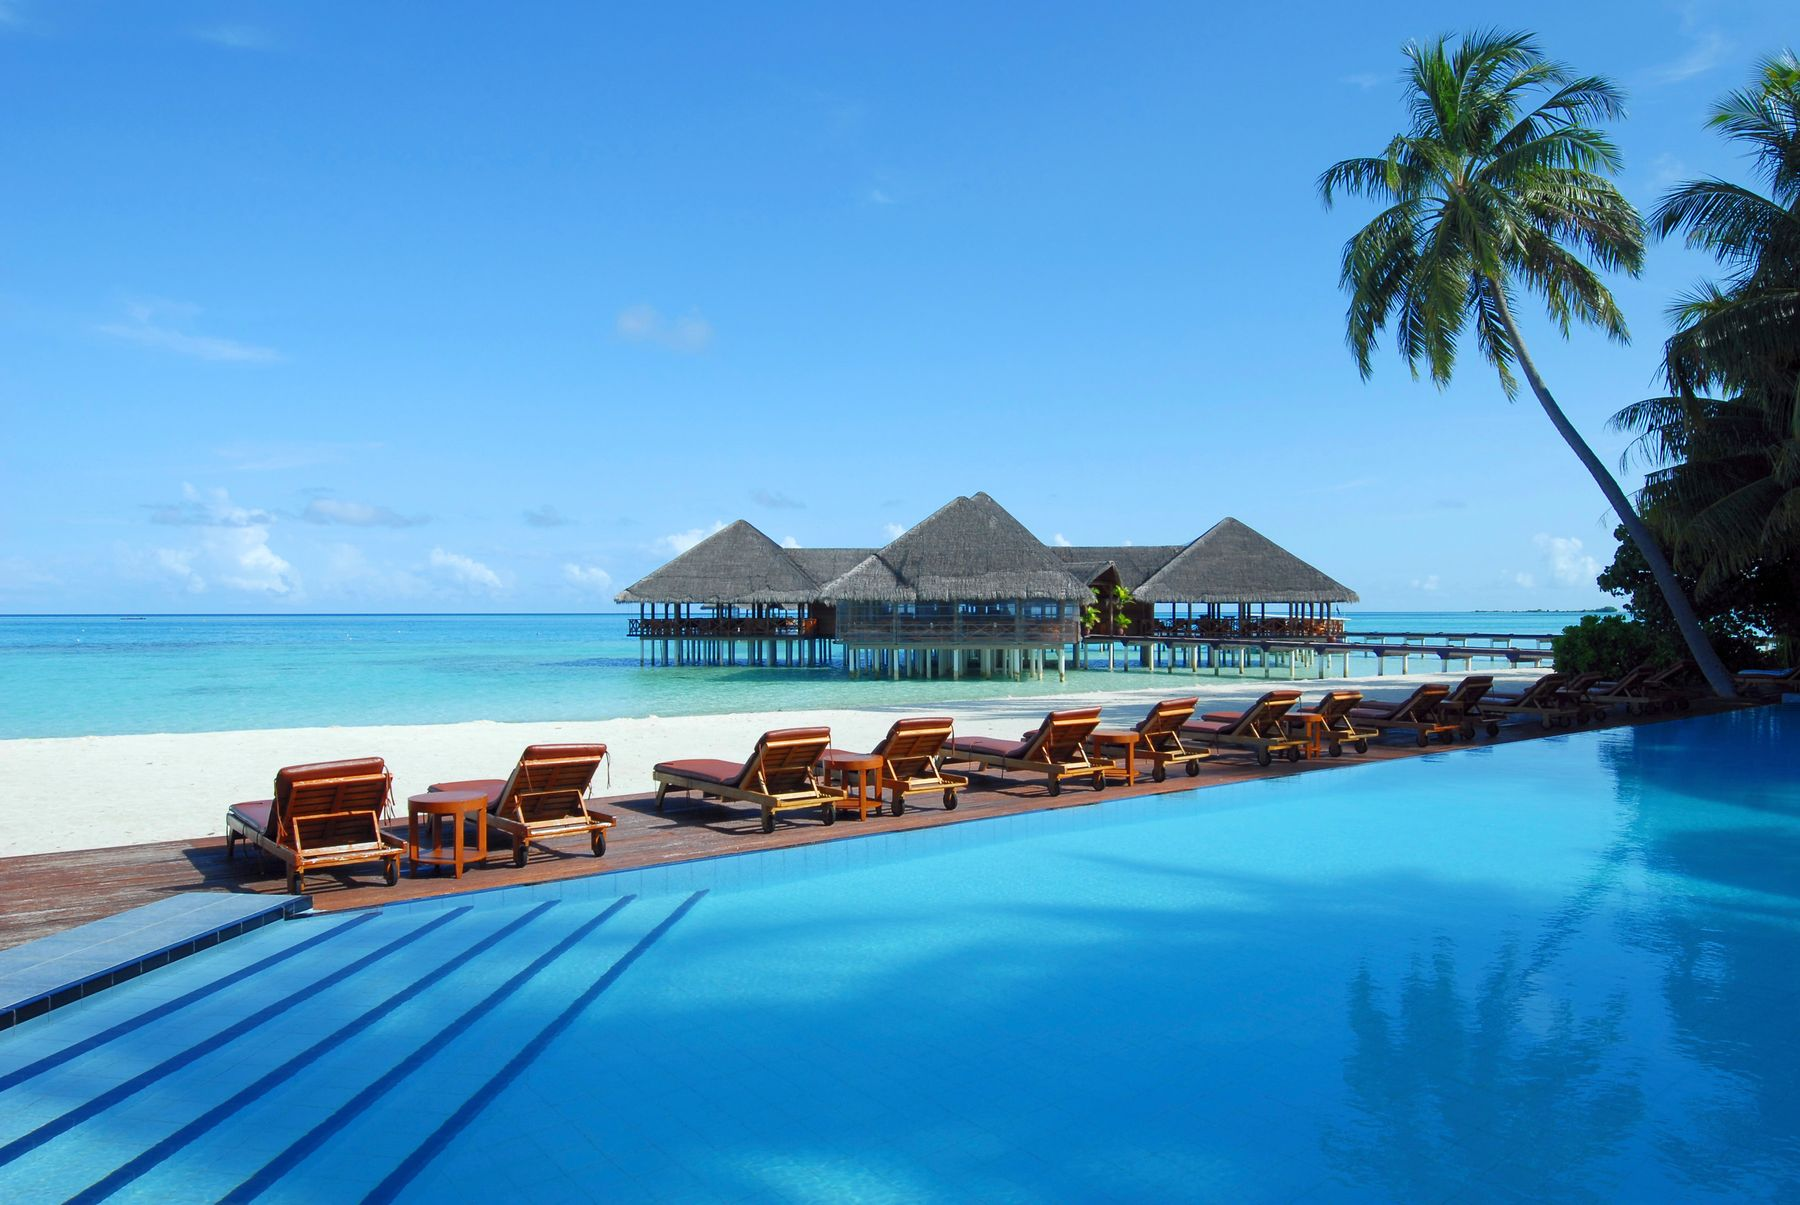 Sun loungers looking out to sea in The Maldives. In the background are over-water bungalows and the foreground features a swimming pool